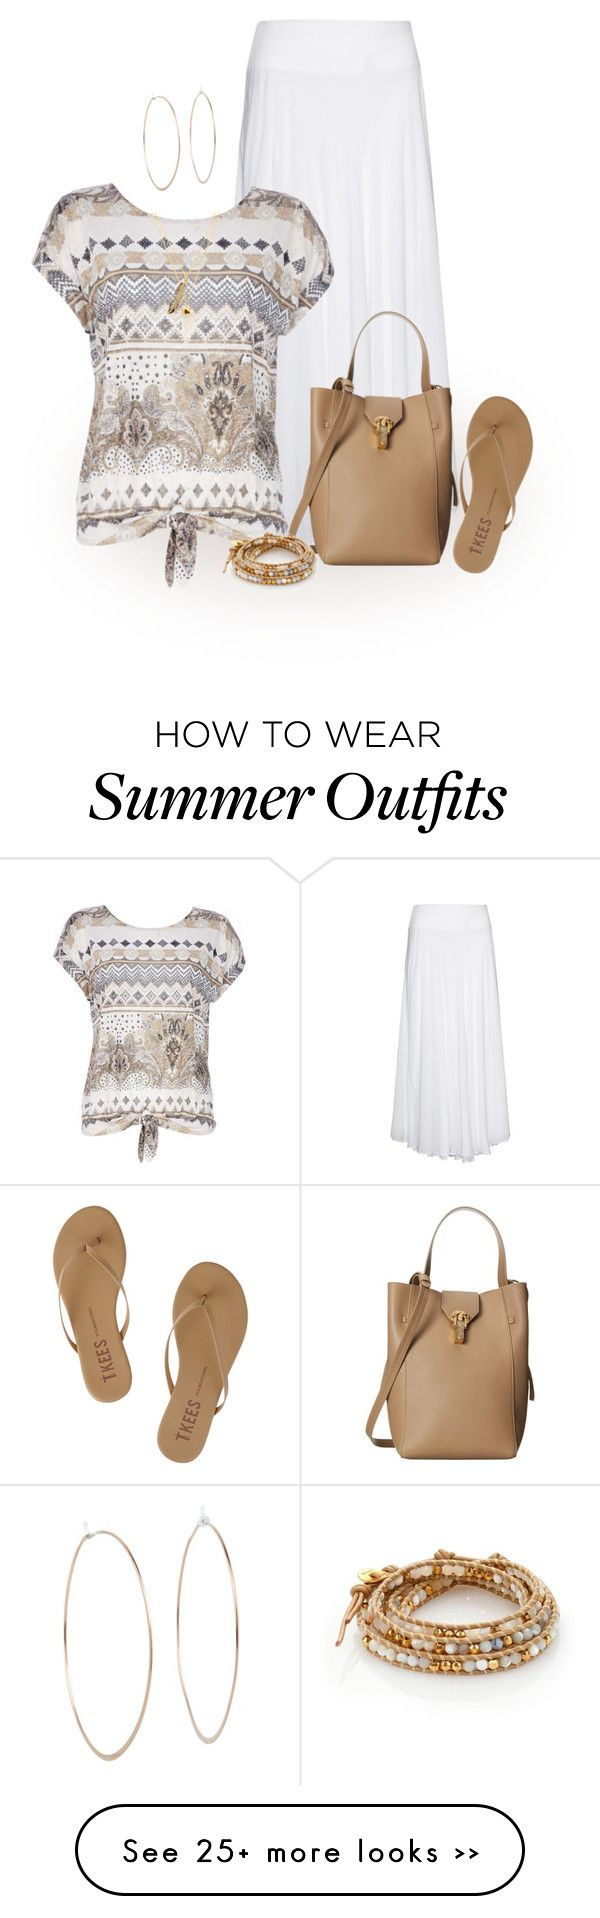 """Where did summer go?"" by terry-tlc on Polyvore featuring Tkees, La Stampa, Wallis, Oscar de la Renta, Michael Kors, Privileged and Chan Luu"